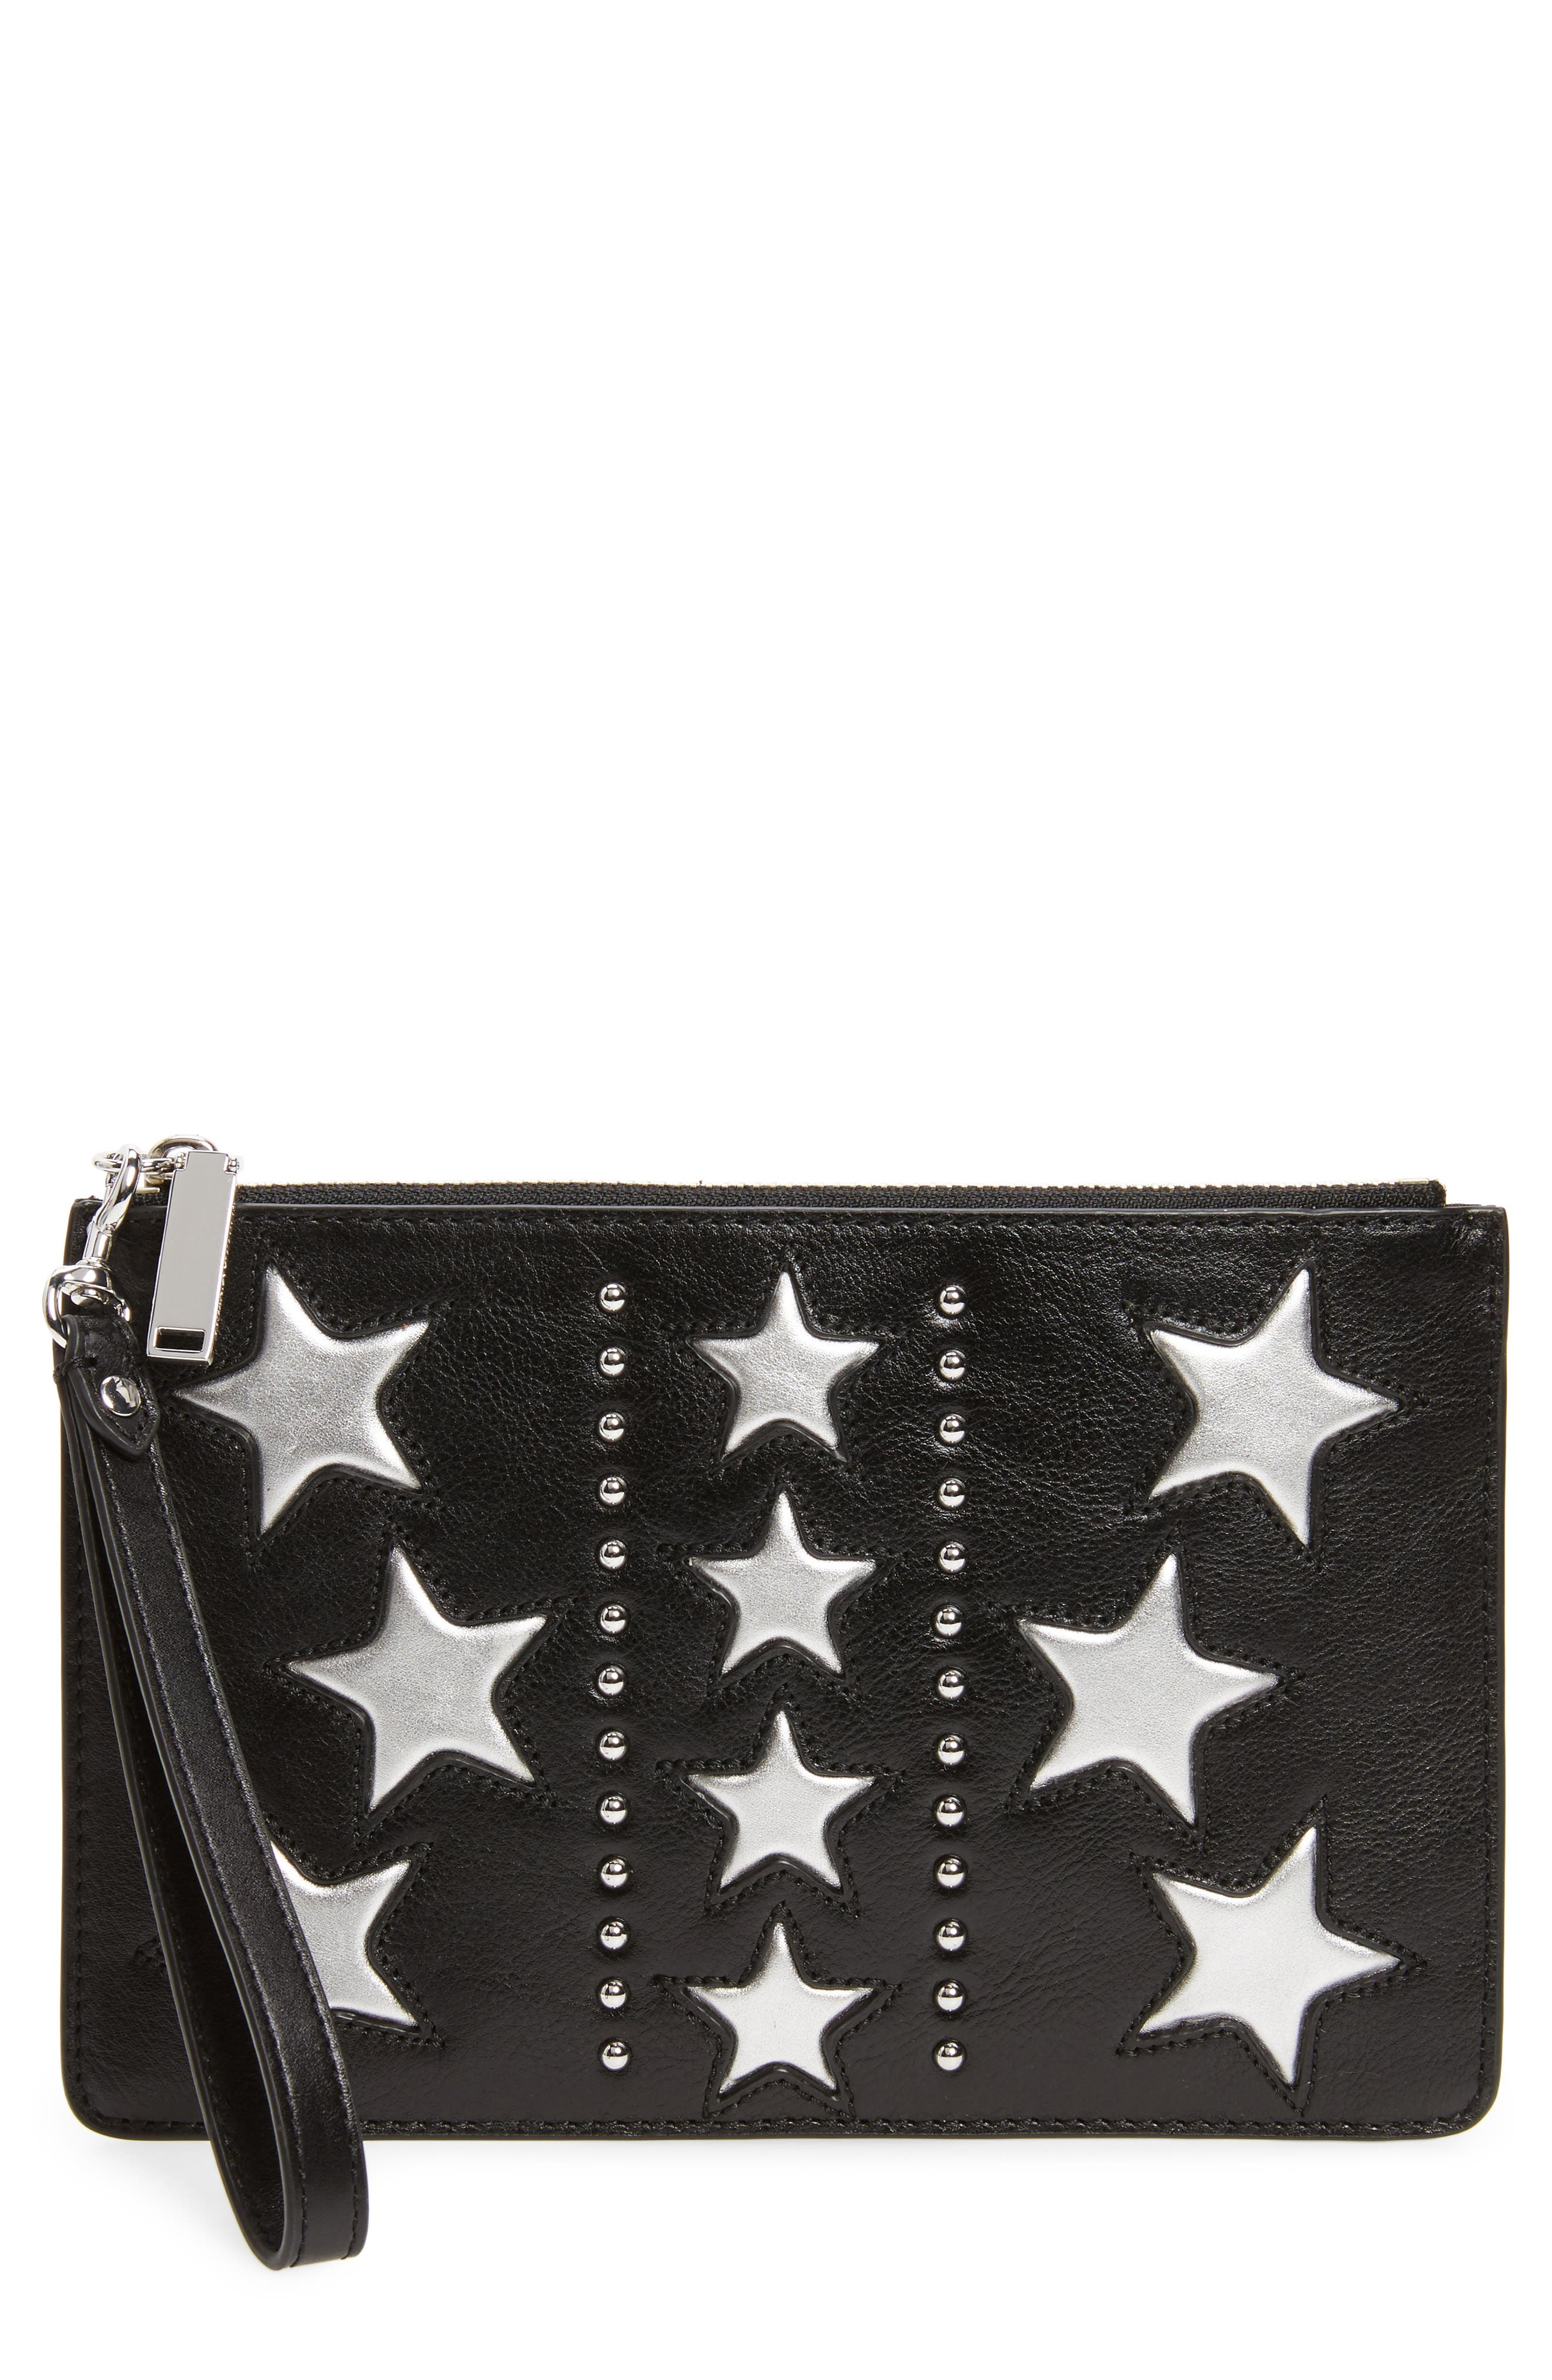 Main Image - Rebecca Minkoff Leather Wristlet Pouch